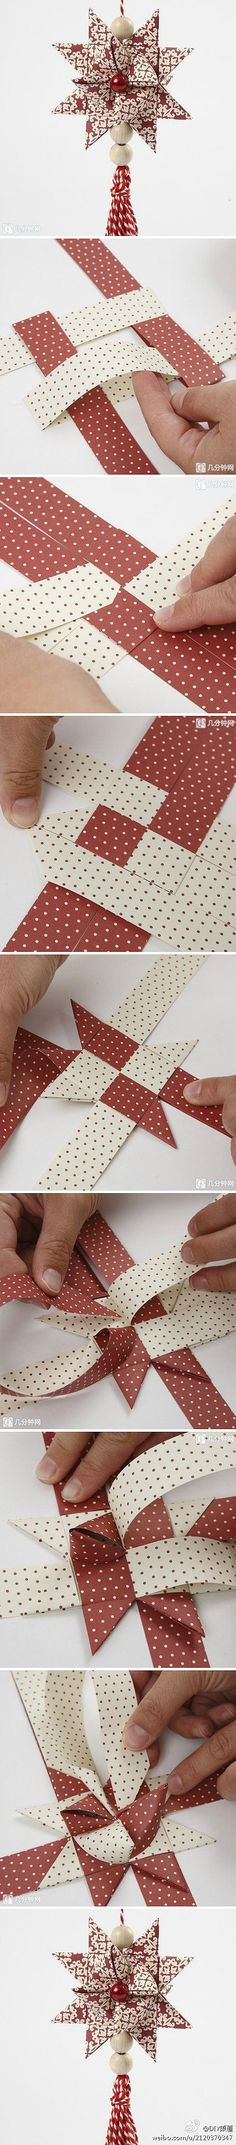 My great grandma, grandma and great aunts made stars similar to this. They were more intricate, and were dipped in wax. I wonder if there still are some hidden in a box of old things somewhere?